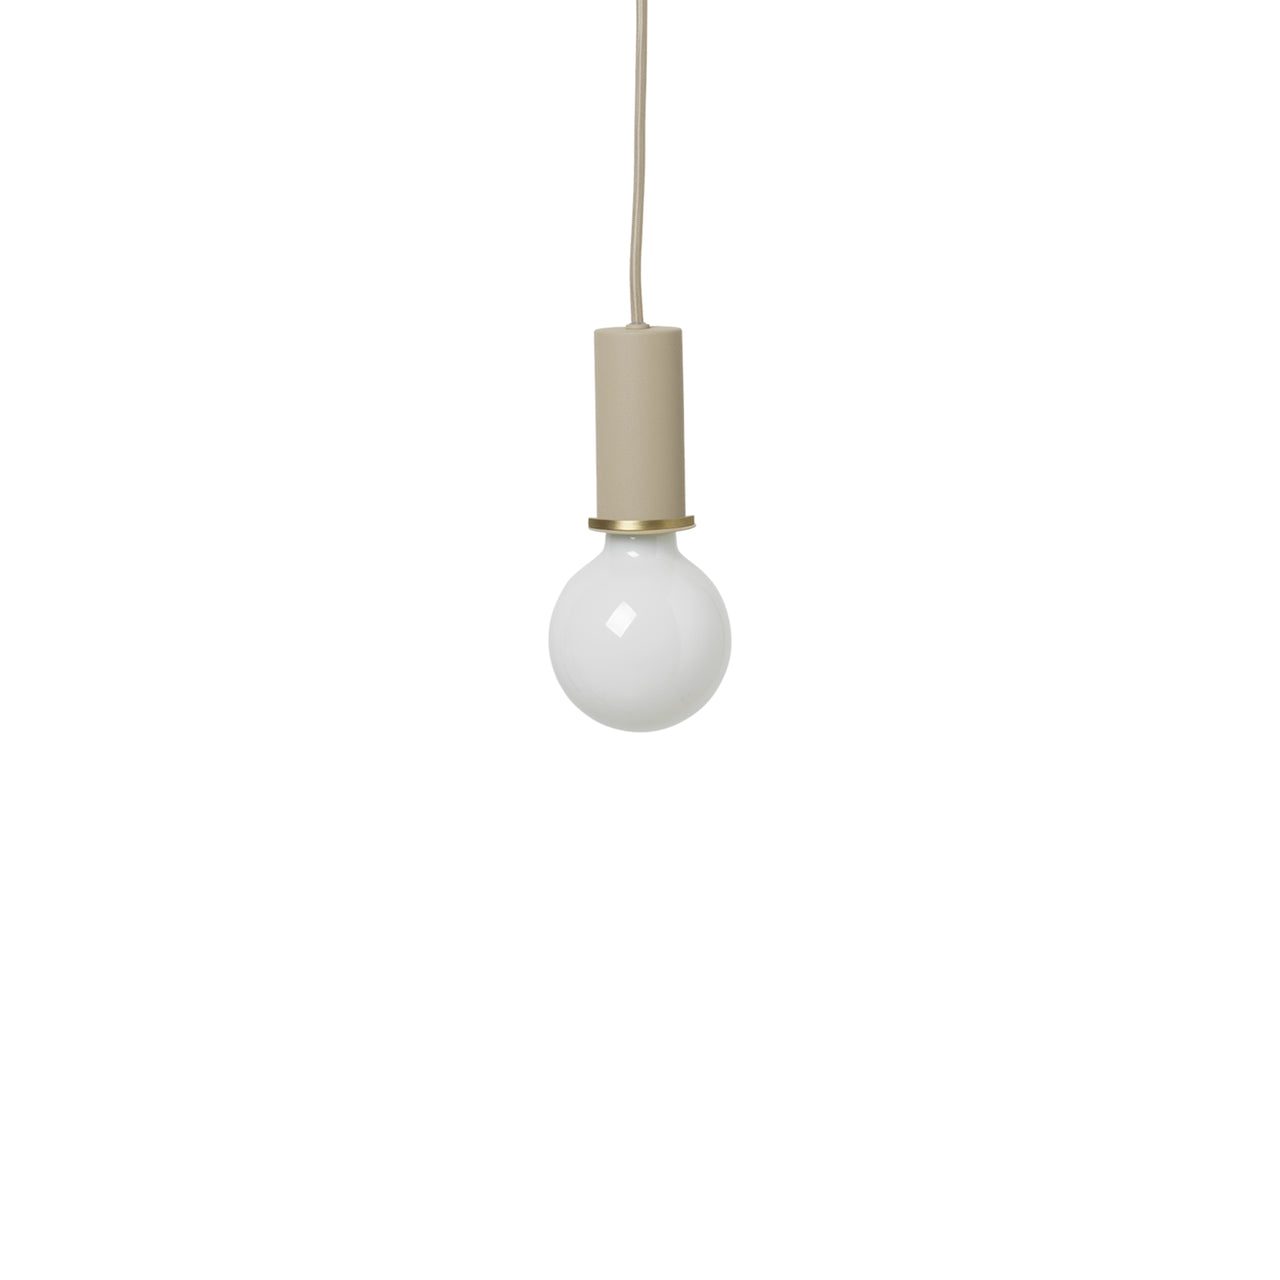 Collect Lighting: Pendant + Low + Cashmere